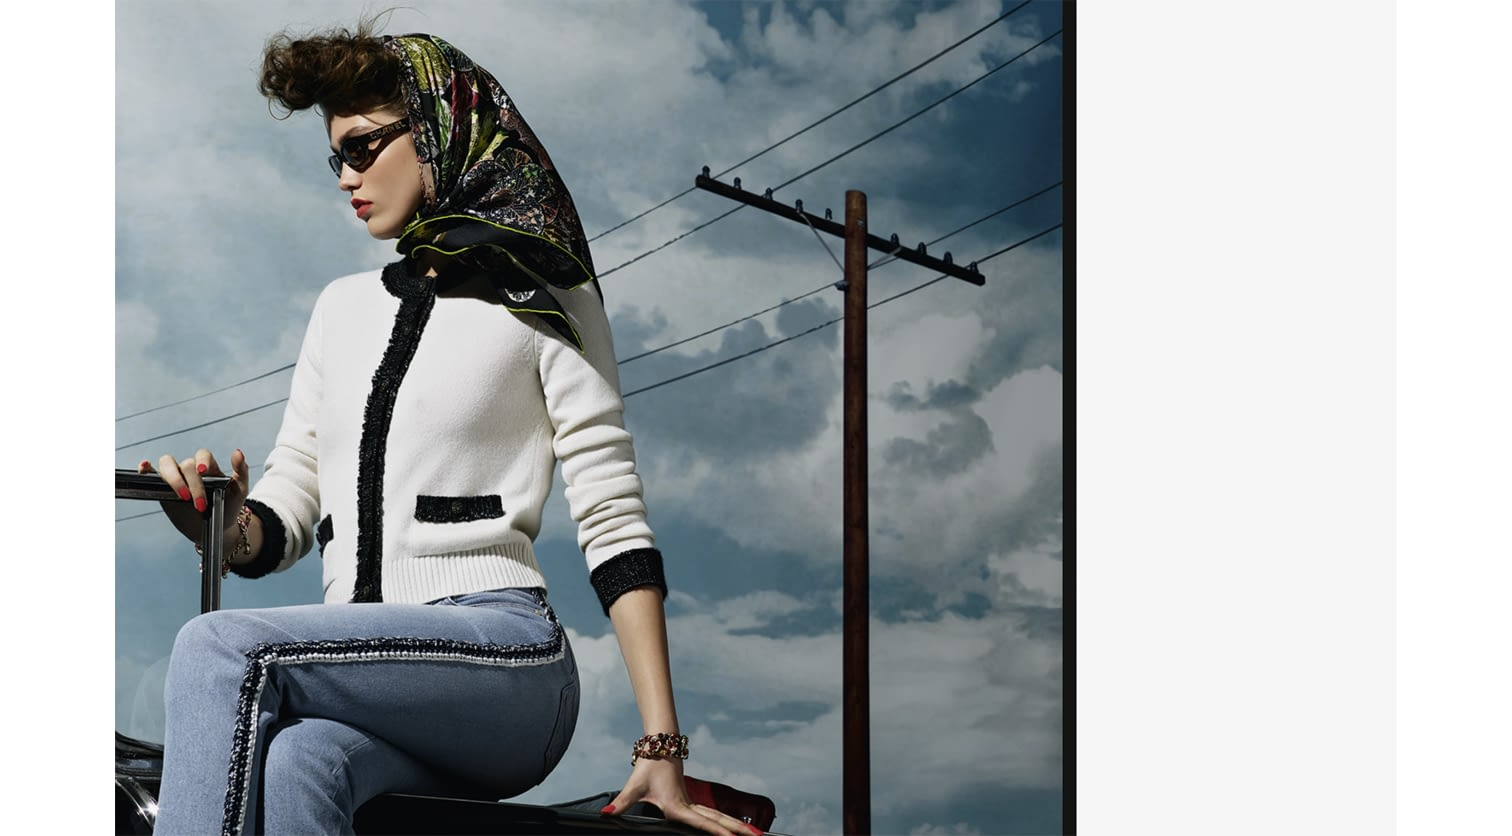 Fall-Winter_2018-19_Eyewear_ad_campaign_by_Karl_Lagerfeld_(3).jpg